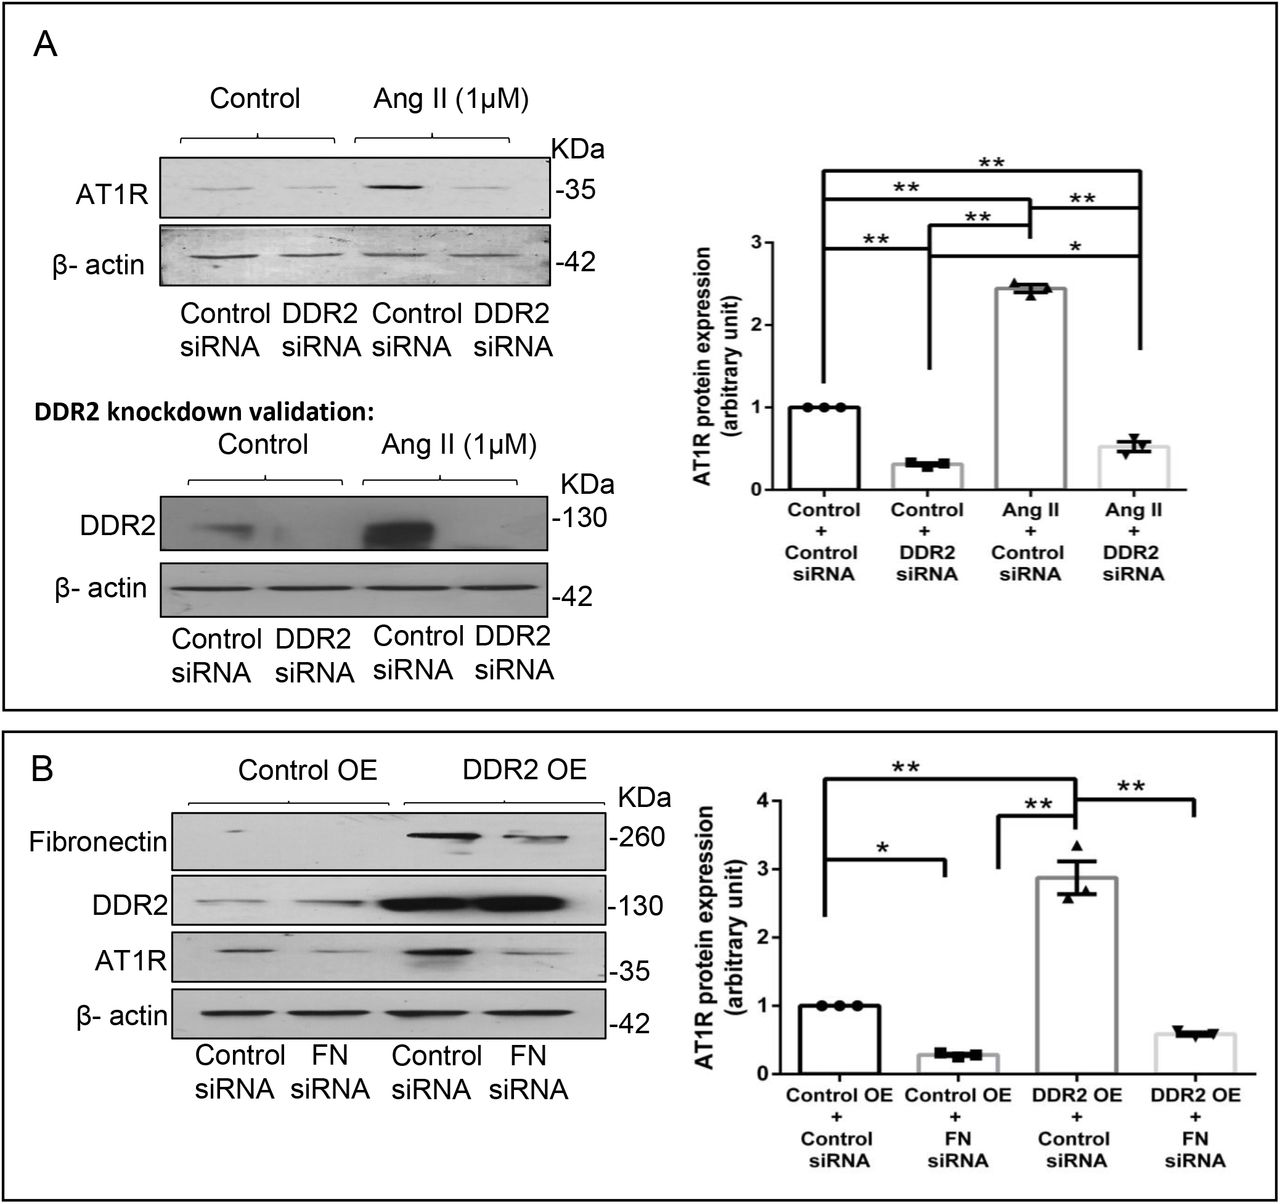 <t>DDR2</t> regulates Ang II-mediated expression of AT1R in cardiac fibroblasts ( A ) RNAi-mediated silencing of DDR2 confirmed its role in regulating AT1R expression in Ang II-stimulated cardiac fibroblasts. Cardiac fibroblasts were transiently transfected with DDR2 siRNA (5 pmol) or control (scrambled) siRNA prior to treatment with Ang II for 12 h. AT1R protein expression was examined, with β-actin as loading control. Validation of DDR2 silencing is also shown. *p